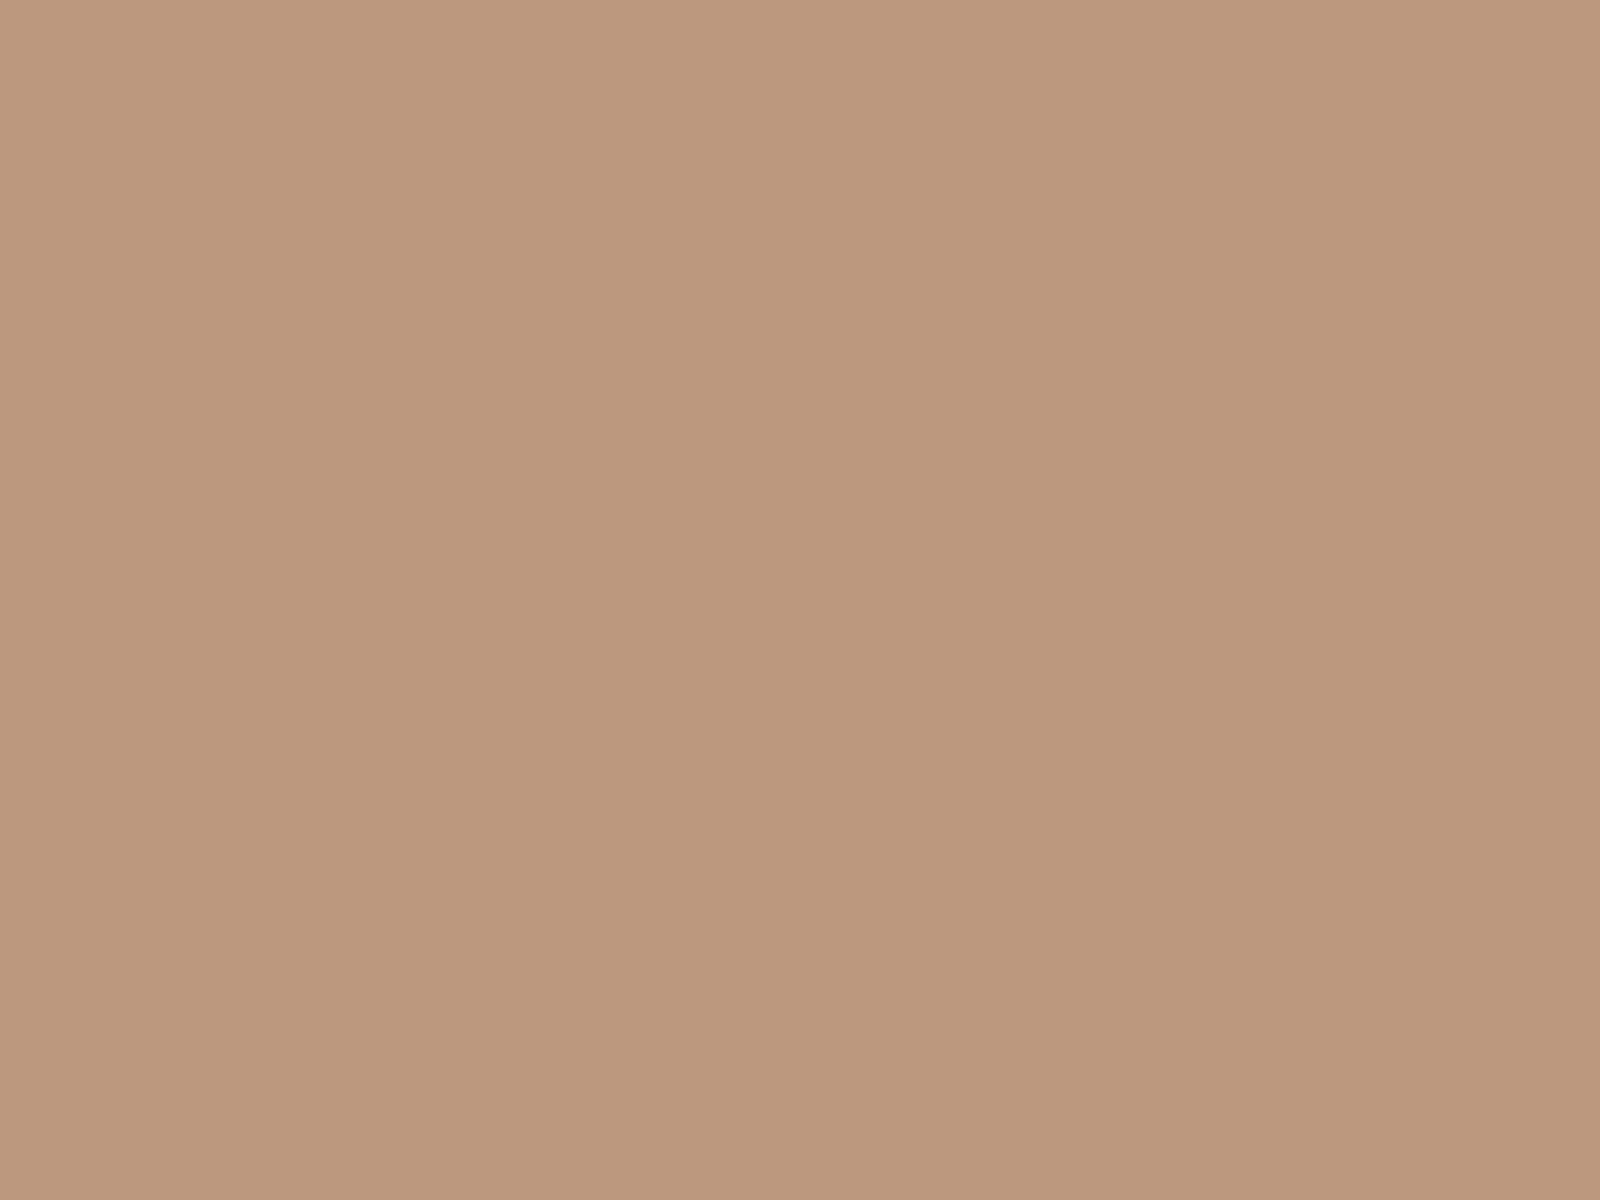 1600x1200 Pale Taupe Solid Color Background